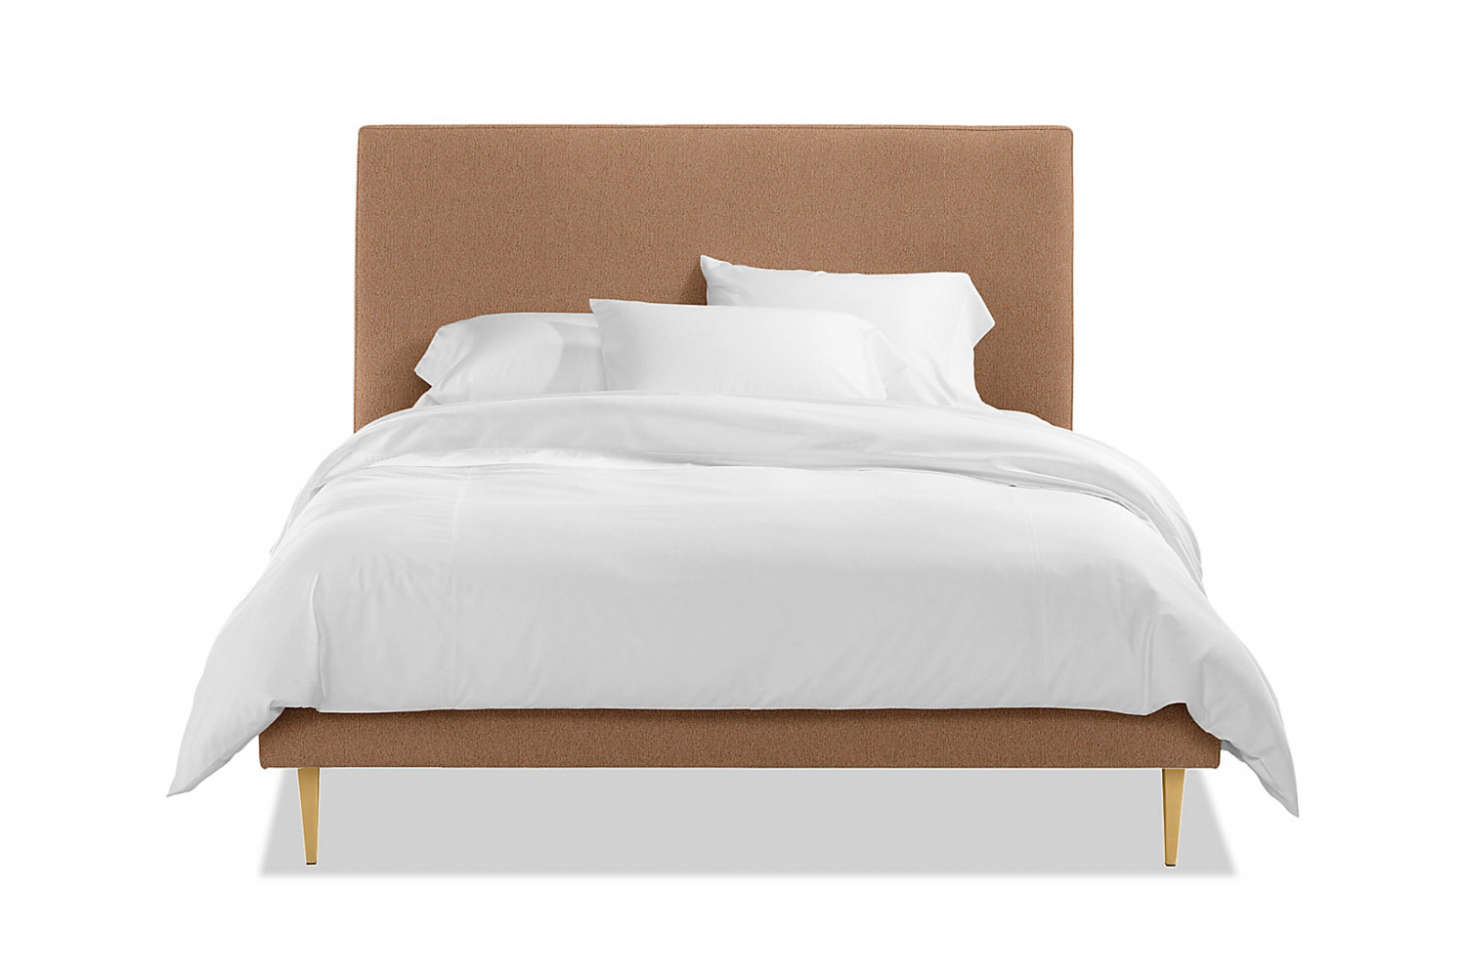 The Ella Bed Frame is $src=